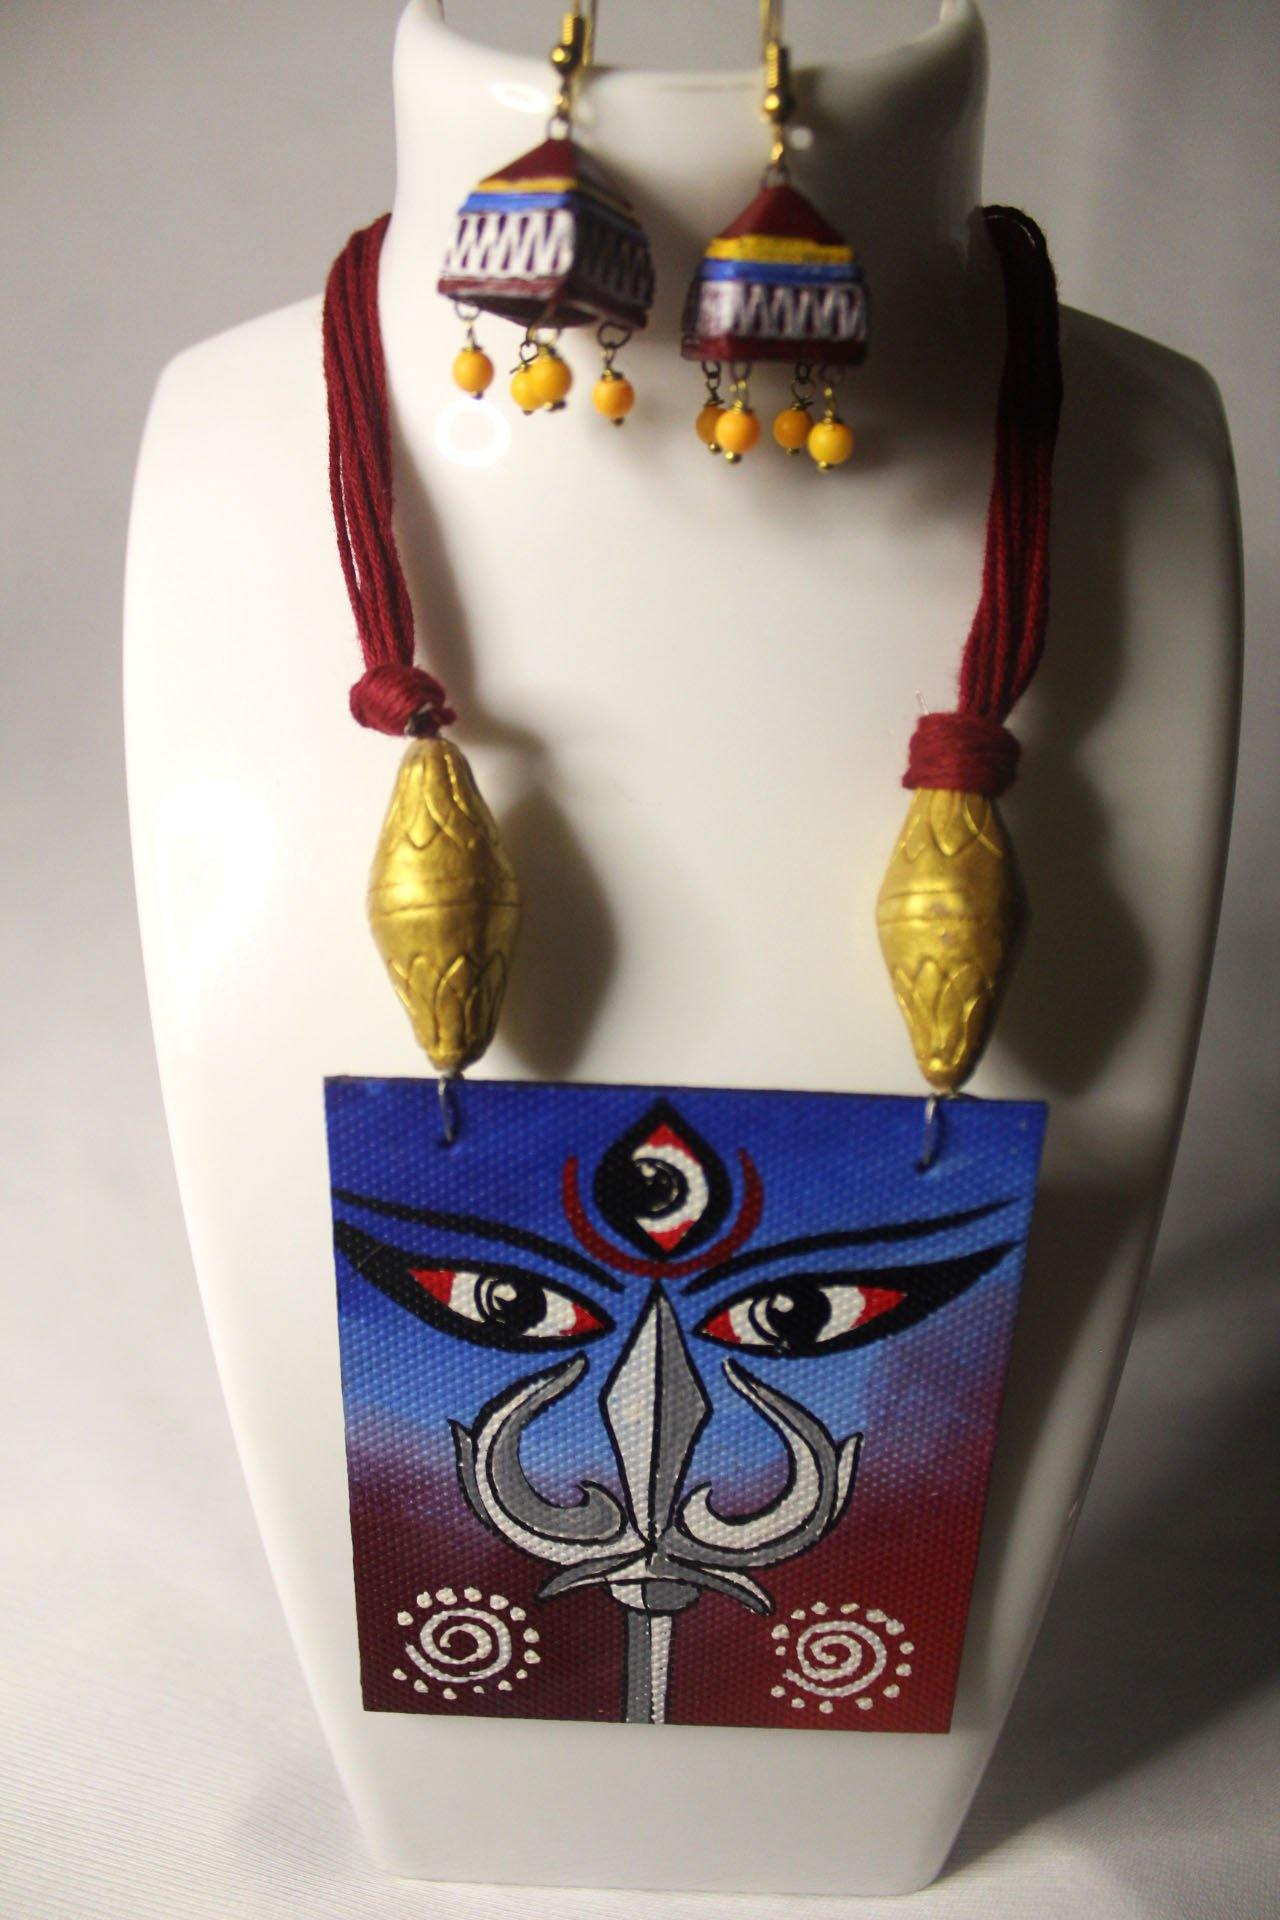 EthniCache Hand Painted Jewelry Blush Hand Painted Terracotta and Wood Jewelry Set